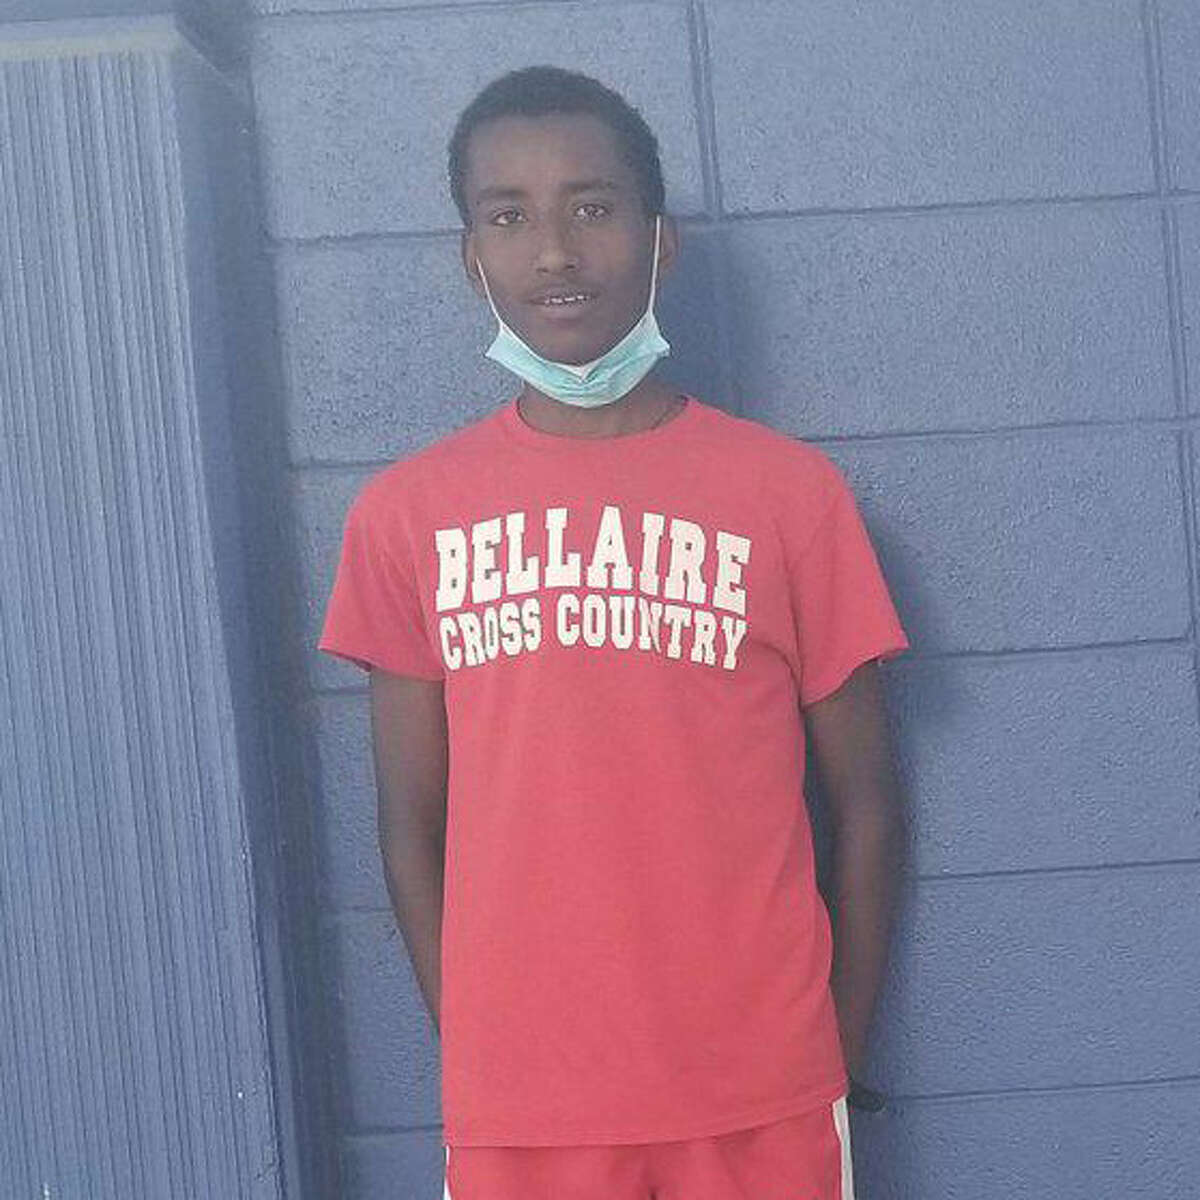 Fnan Measho was a member of the Bellaire High School Cross Country and Track team. He was one of three struck and killed by a car in southwest Houston Friday night.